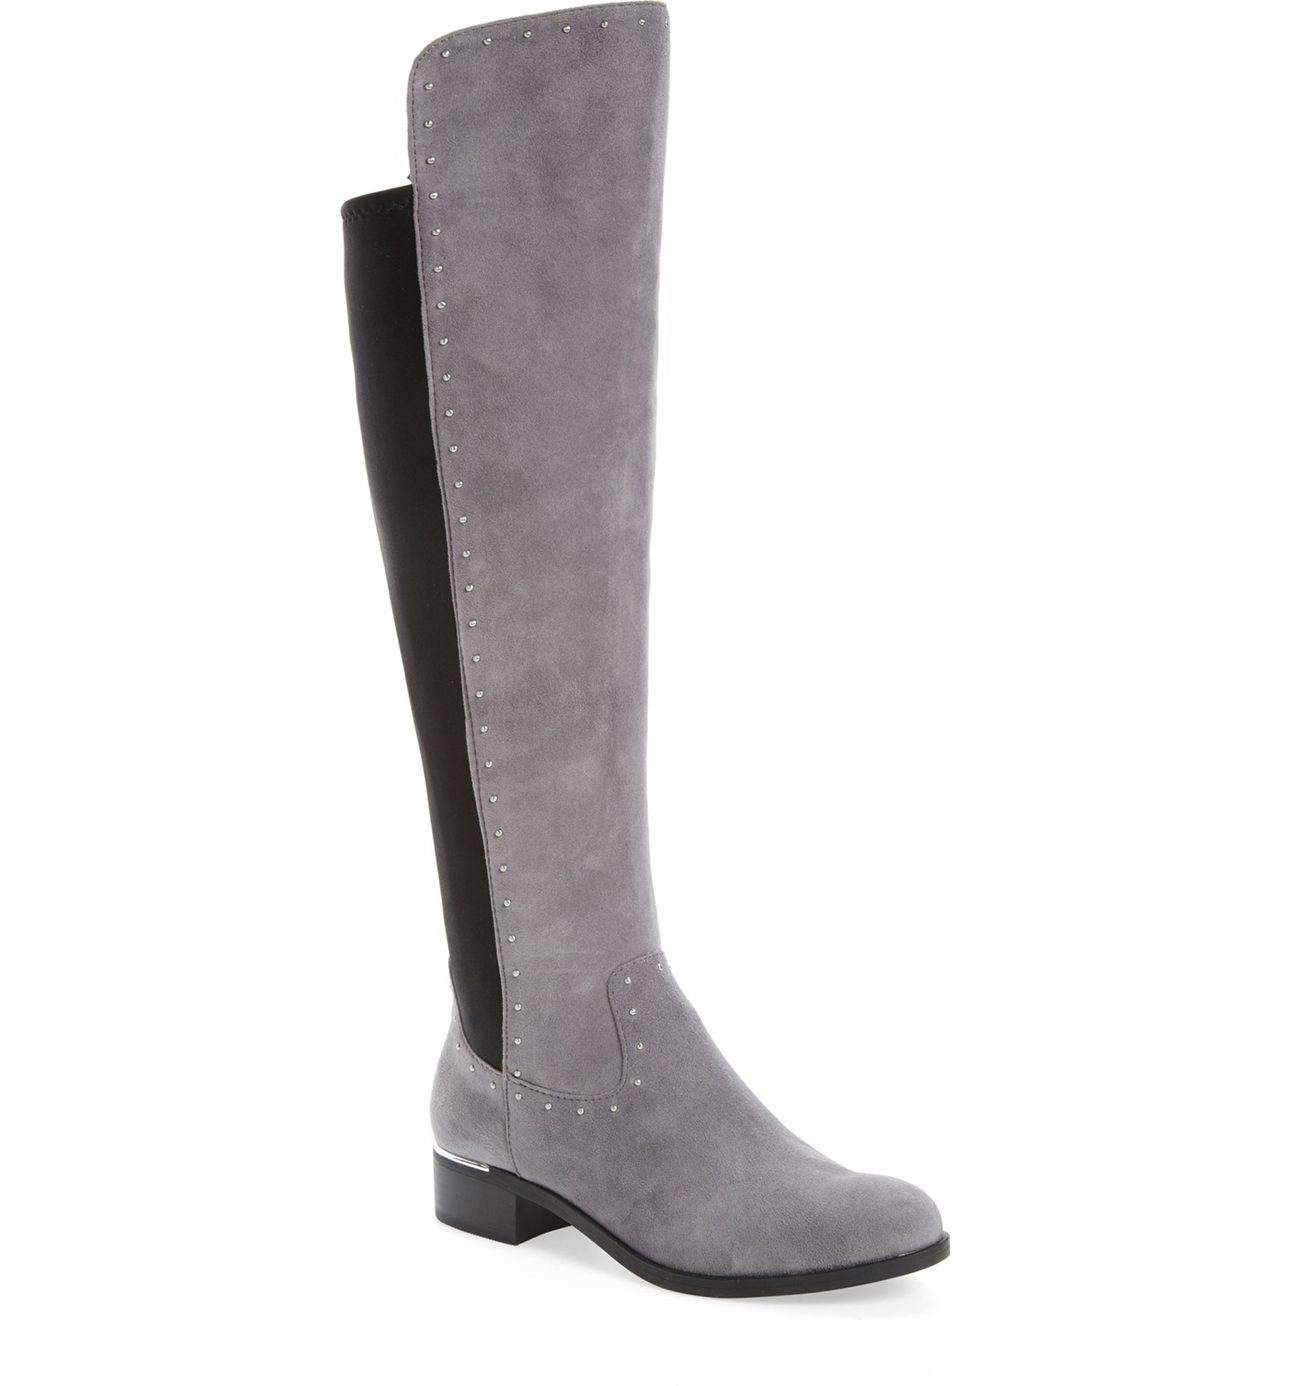 If you are hesitant to try this trend, find inspiration with these Calvin Klein Cynthia Studded Riding Boot ($198.95).  You can actually get away with wearing these boots to work (I swear).  Wear over black tights or leggings, even skinny jeans with a chunky sweater on top.  You'll feel edgy but still look classy.  (Image: Nordstrom)